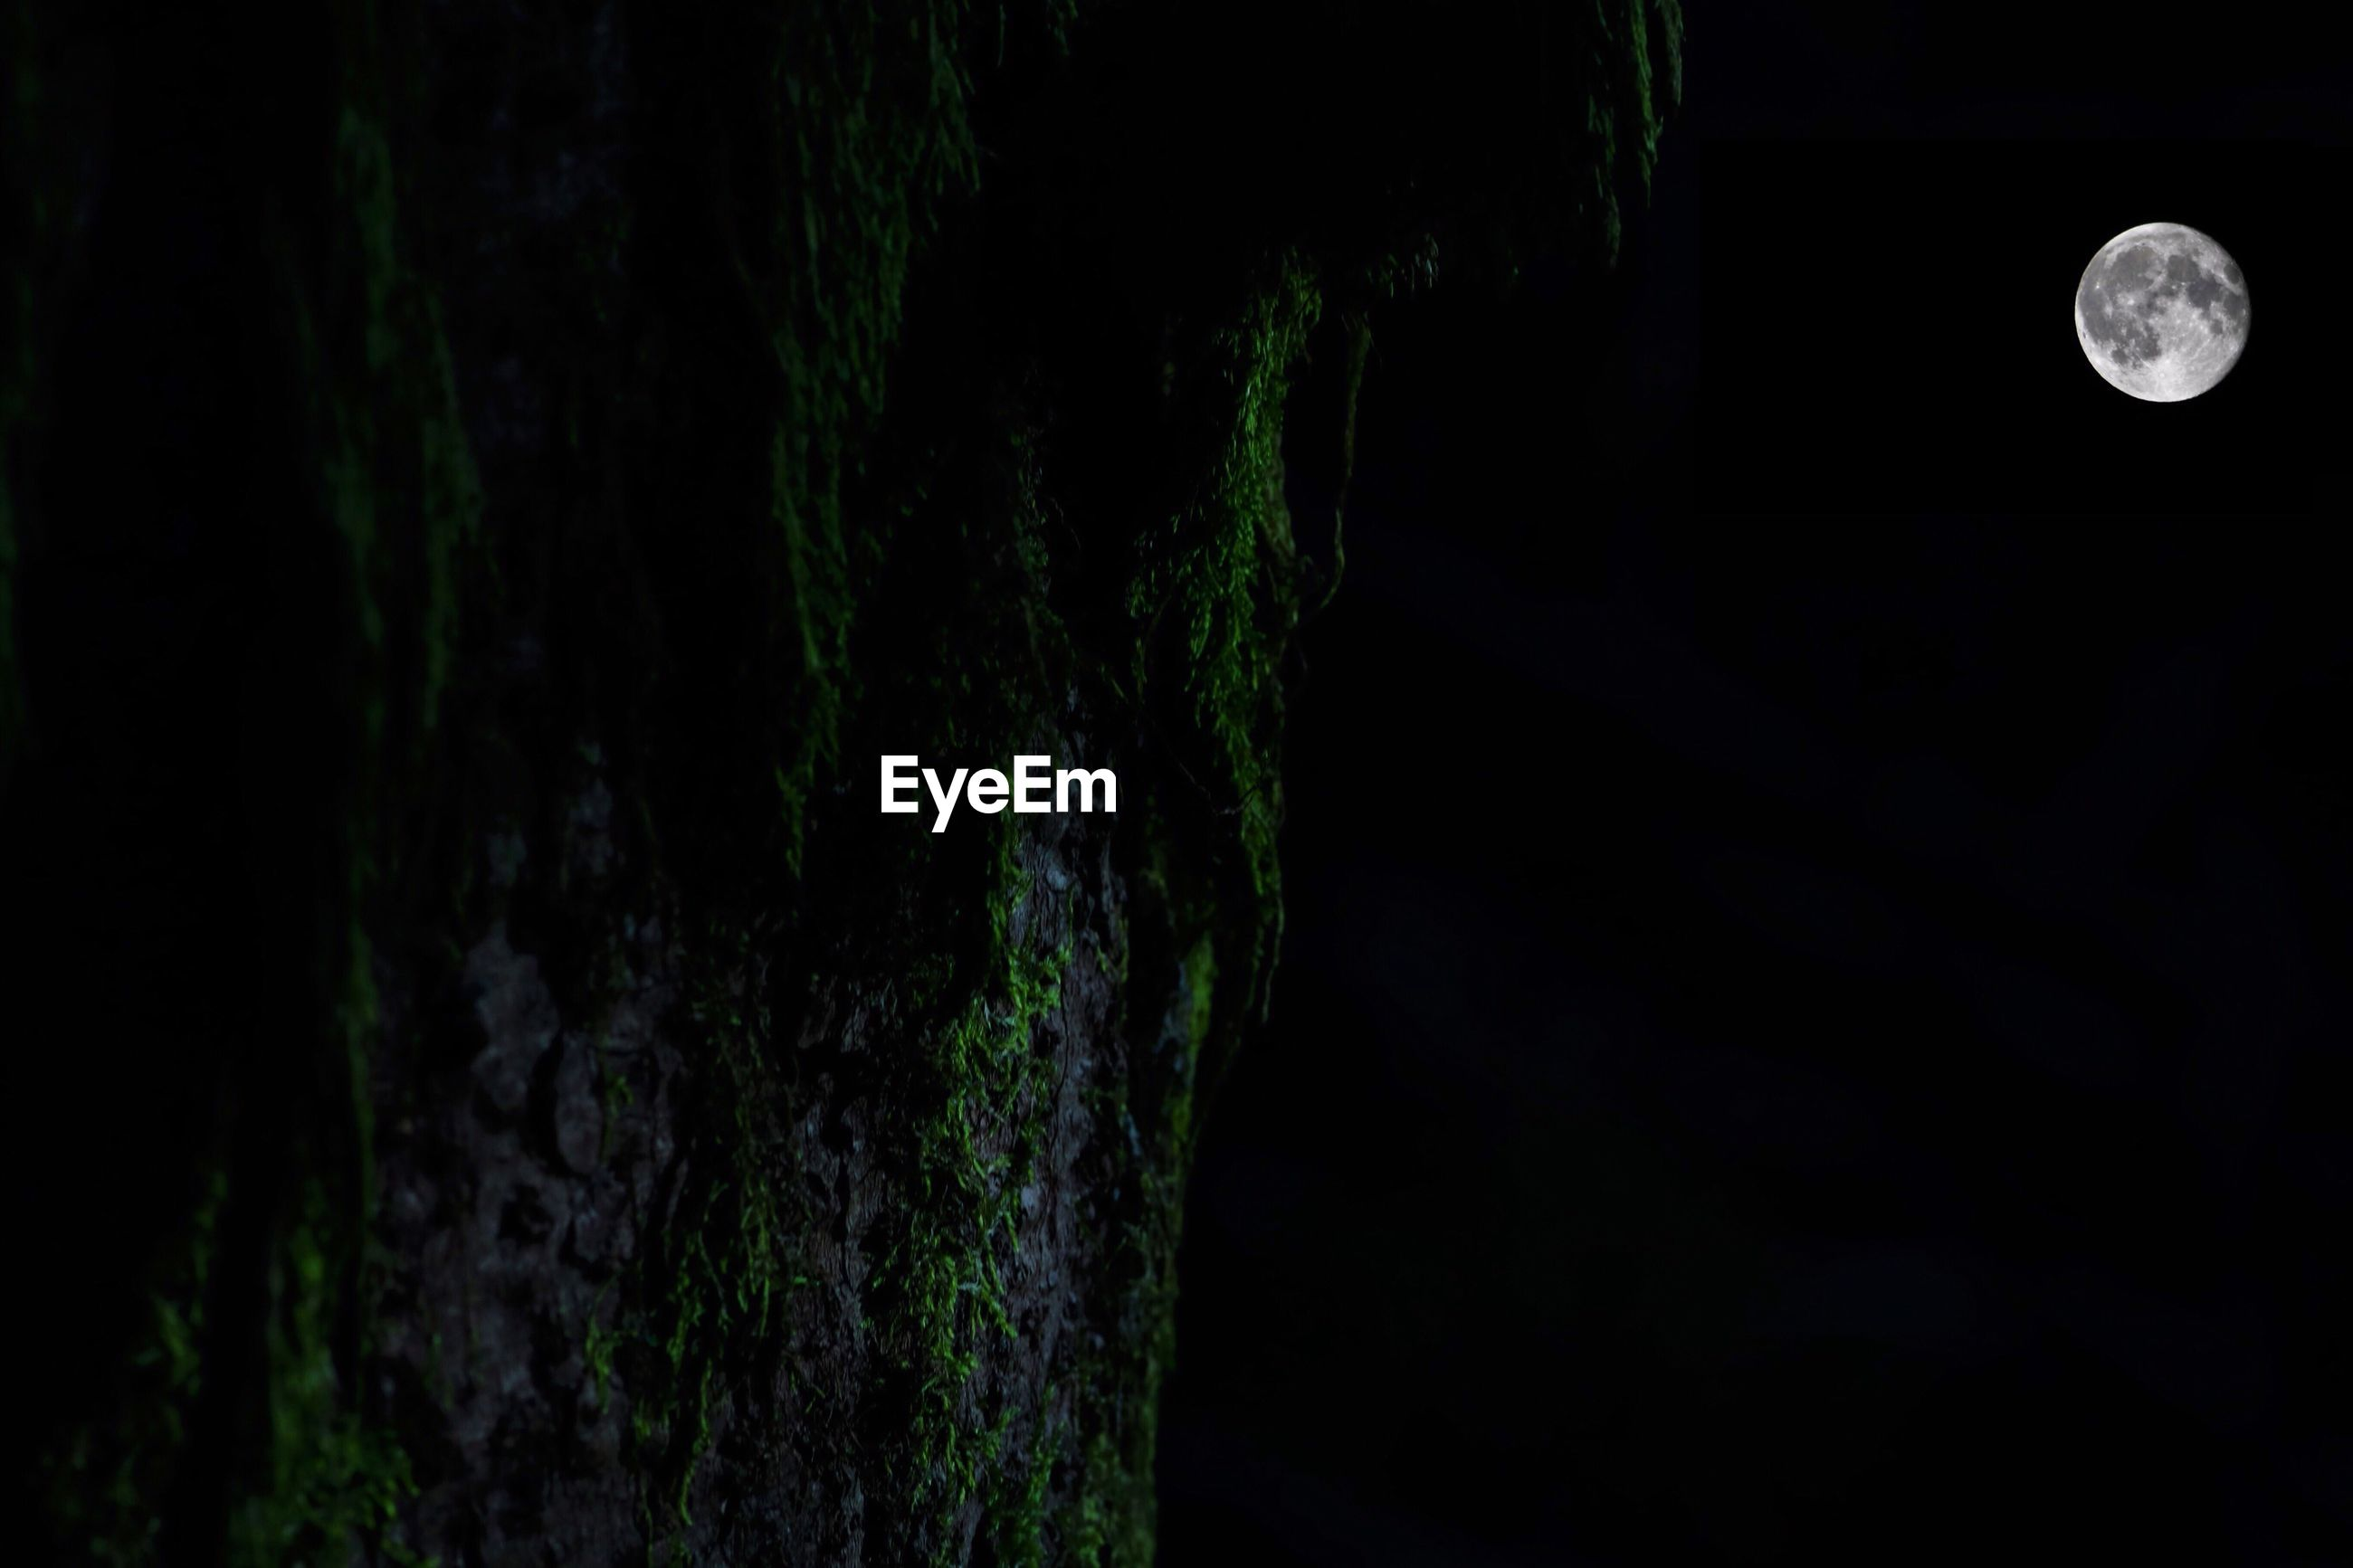 CLOSE-UP OF TREE TRUNK AGAINST MOON